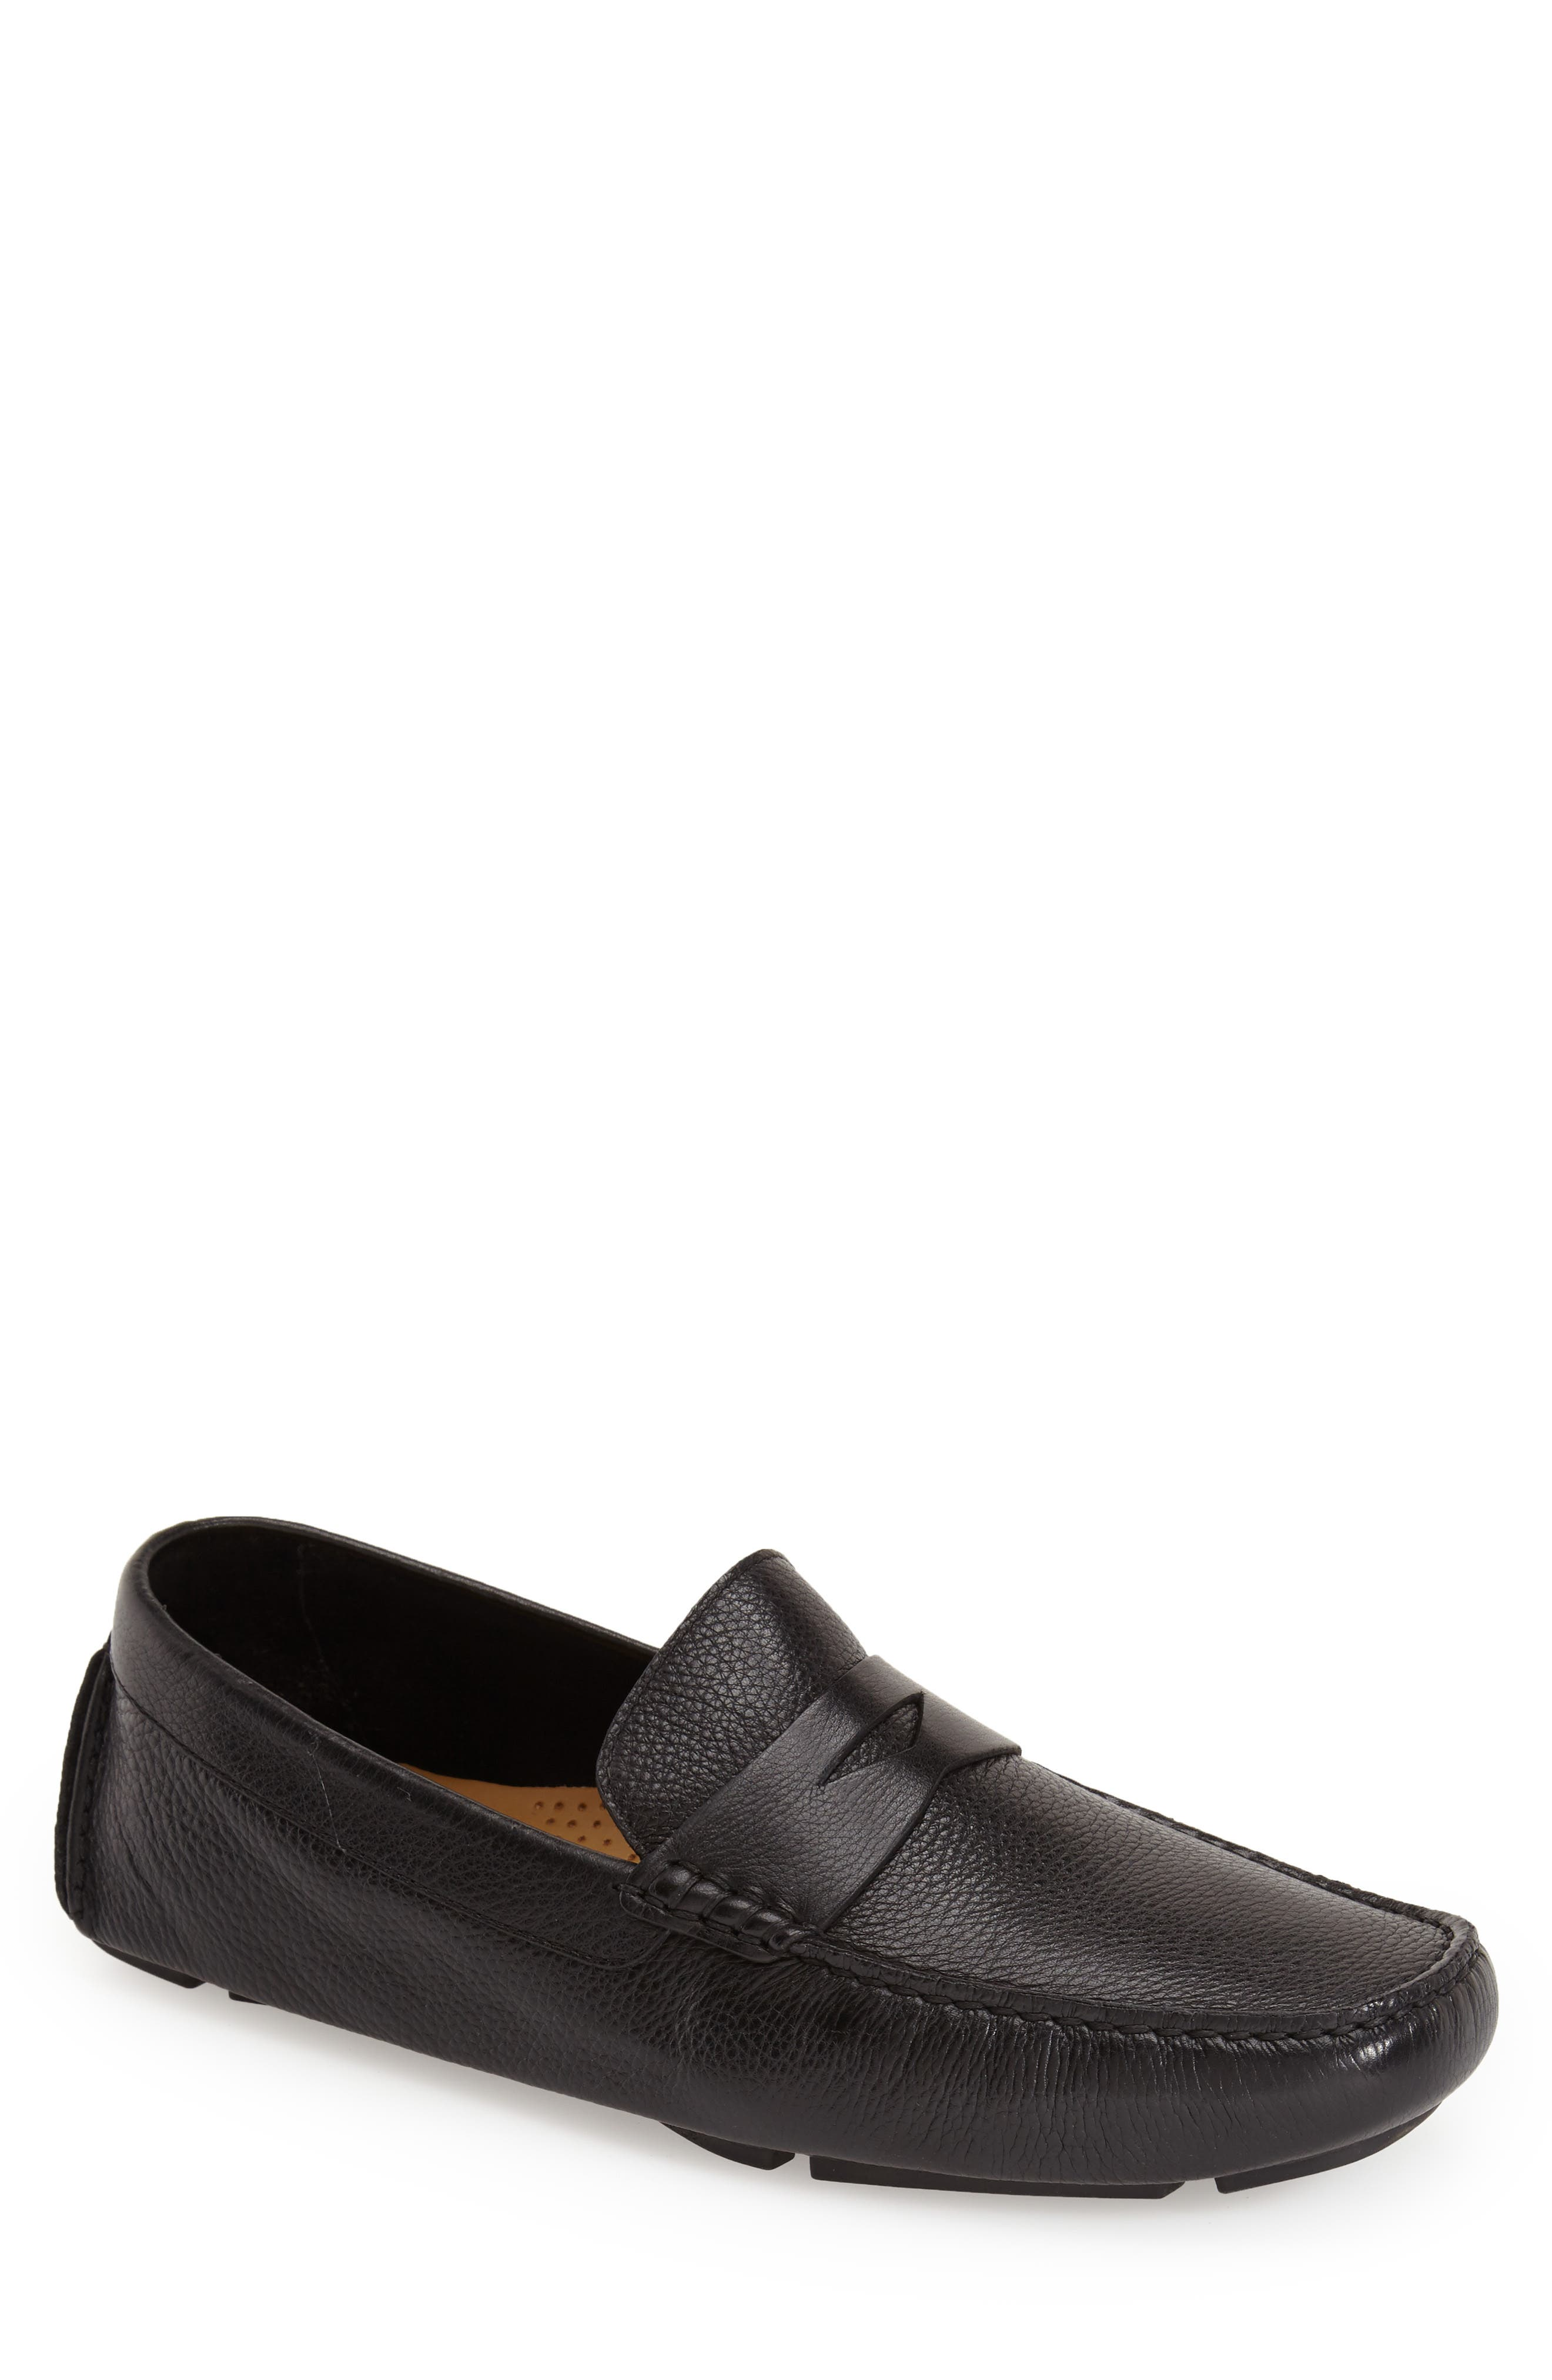 'Howland' Penny Loafer,                             Alternate thumbnail 10, color,                             BLACK TUMBLED